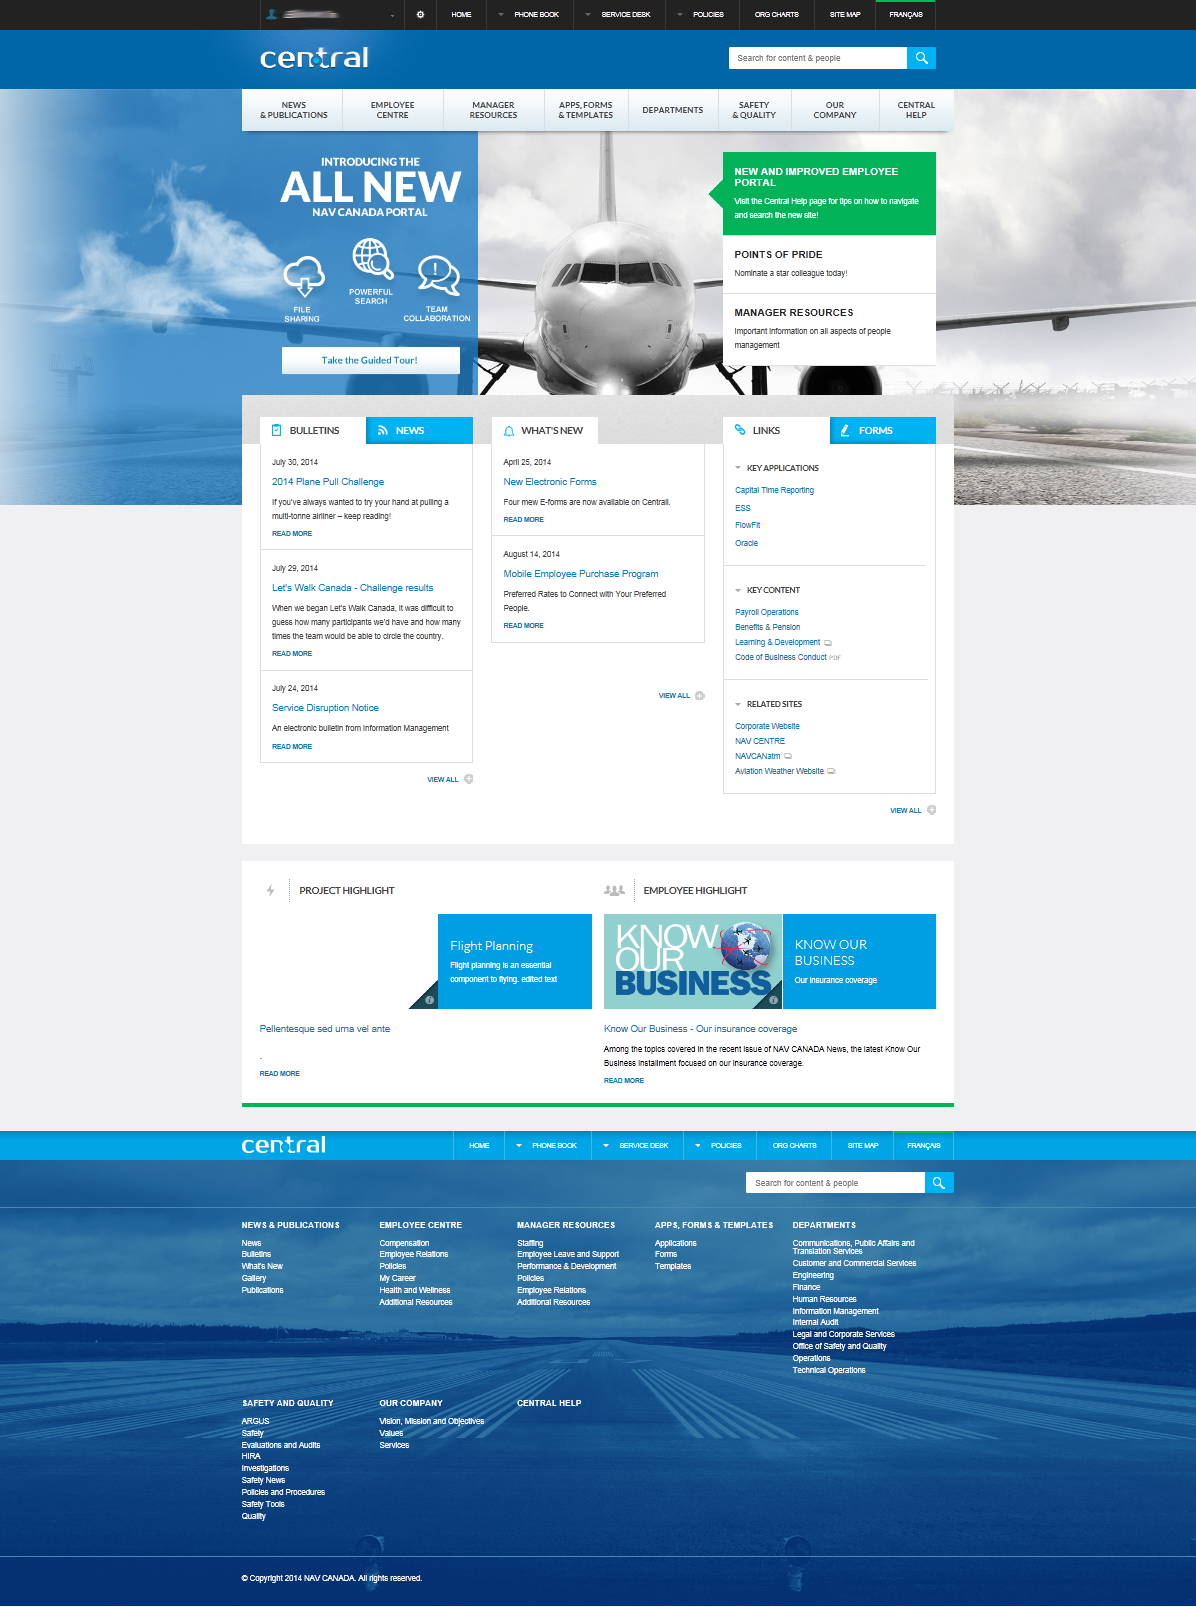 Intranet Design Ideas intranet design 101 a practical guide to building an intranet Nav Canadas Delightful Intranet Is Based On Sharepoint 2013 Above Is The Homepage The